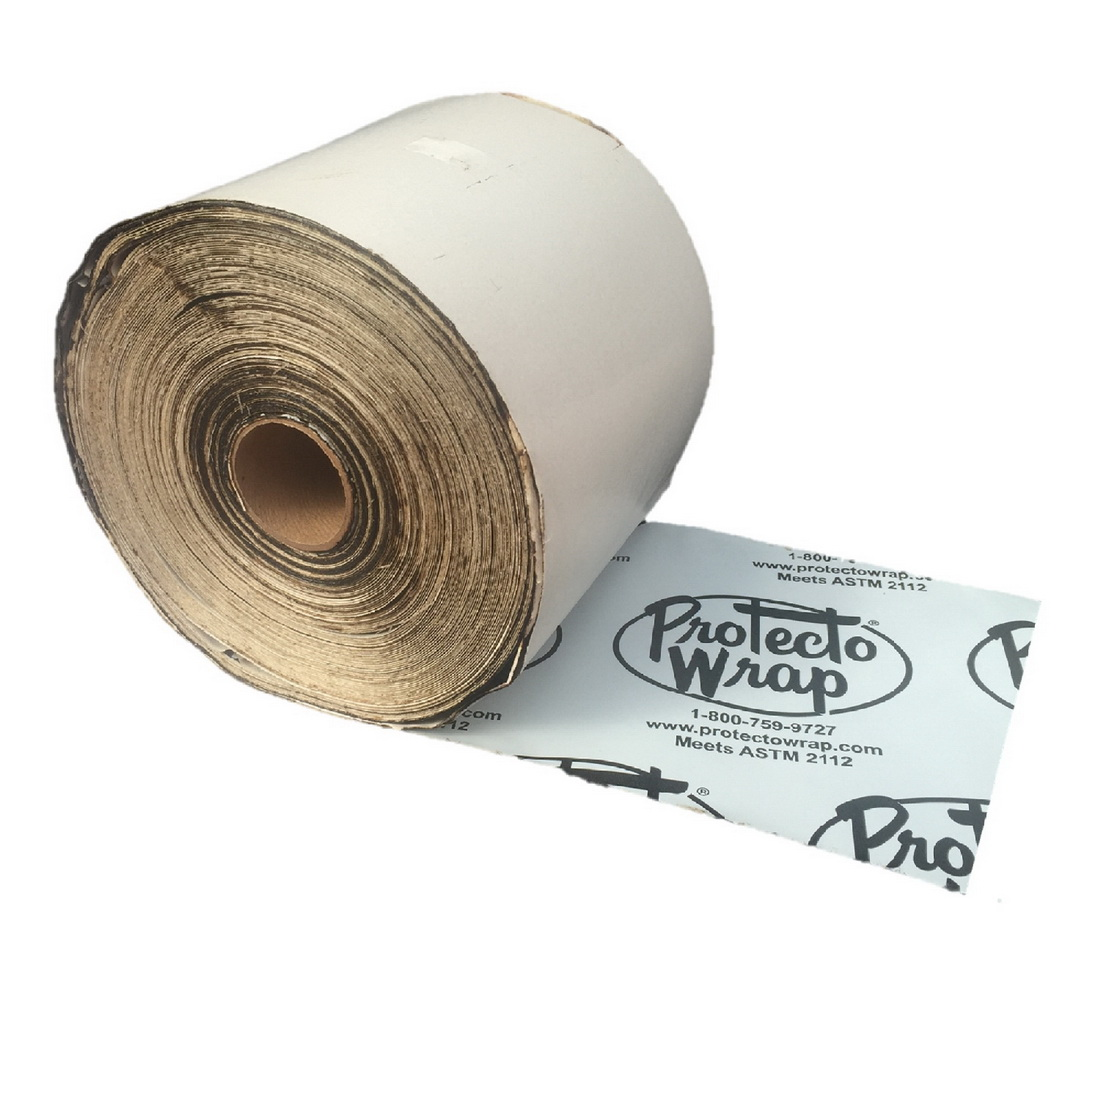 Protecto Wrap Sill Tape 150mm x 30m